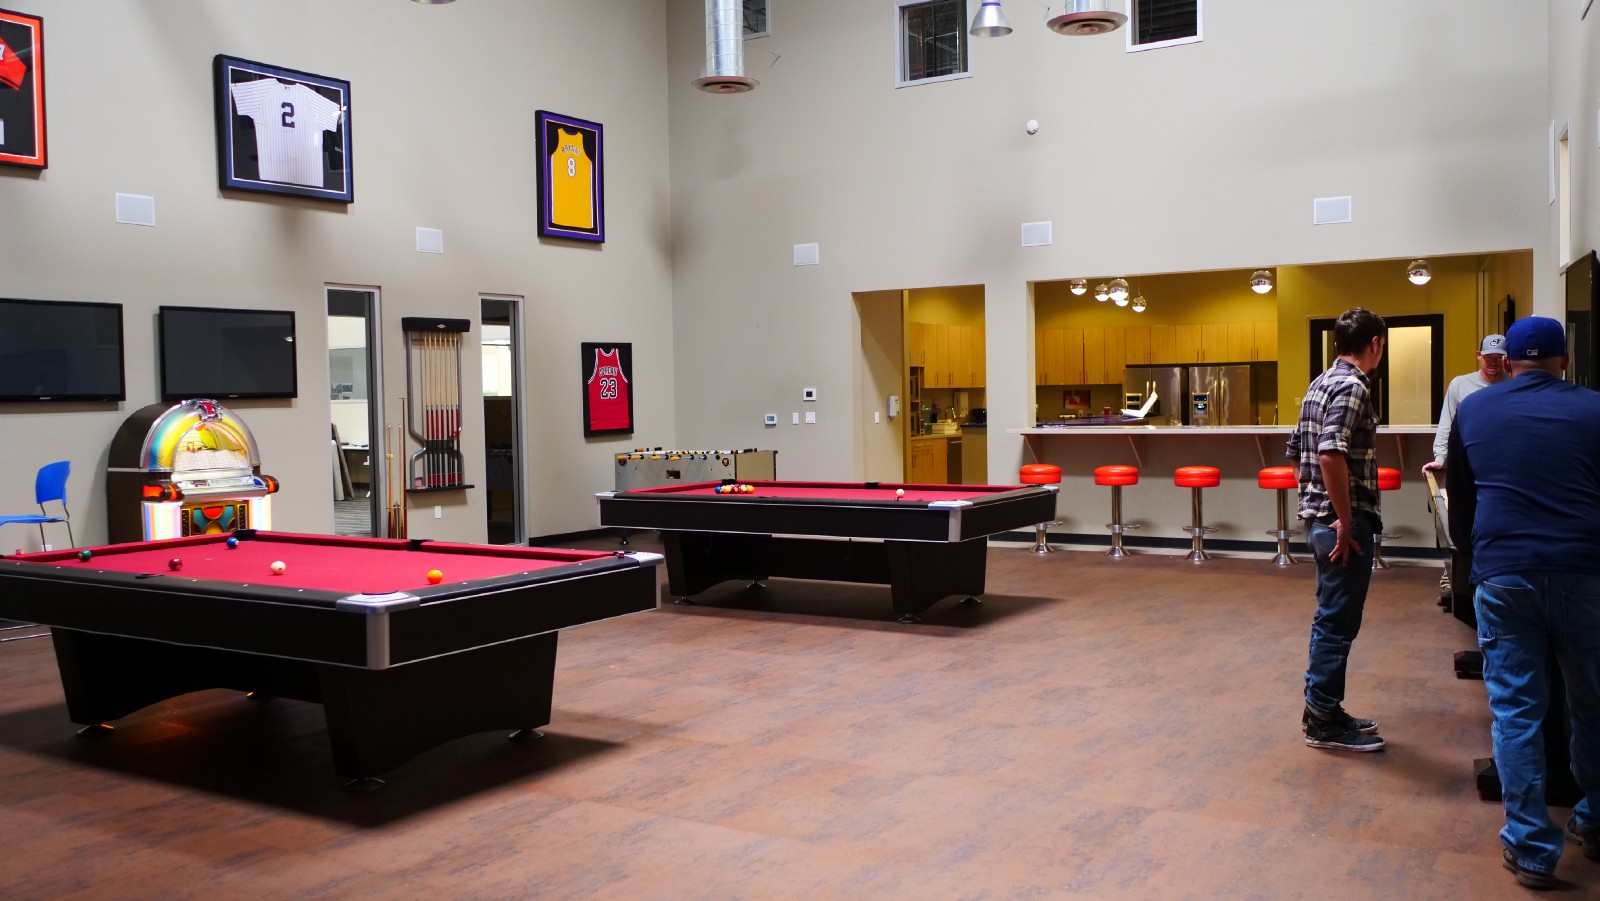 Of The Coolest Hidden Gem Companies To Work For In Southern - Pool table companies